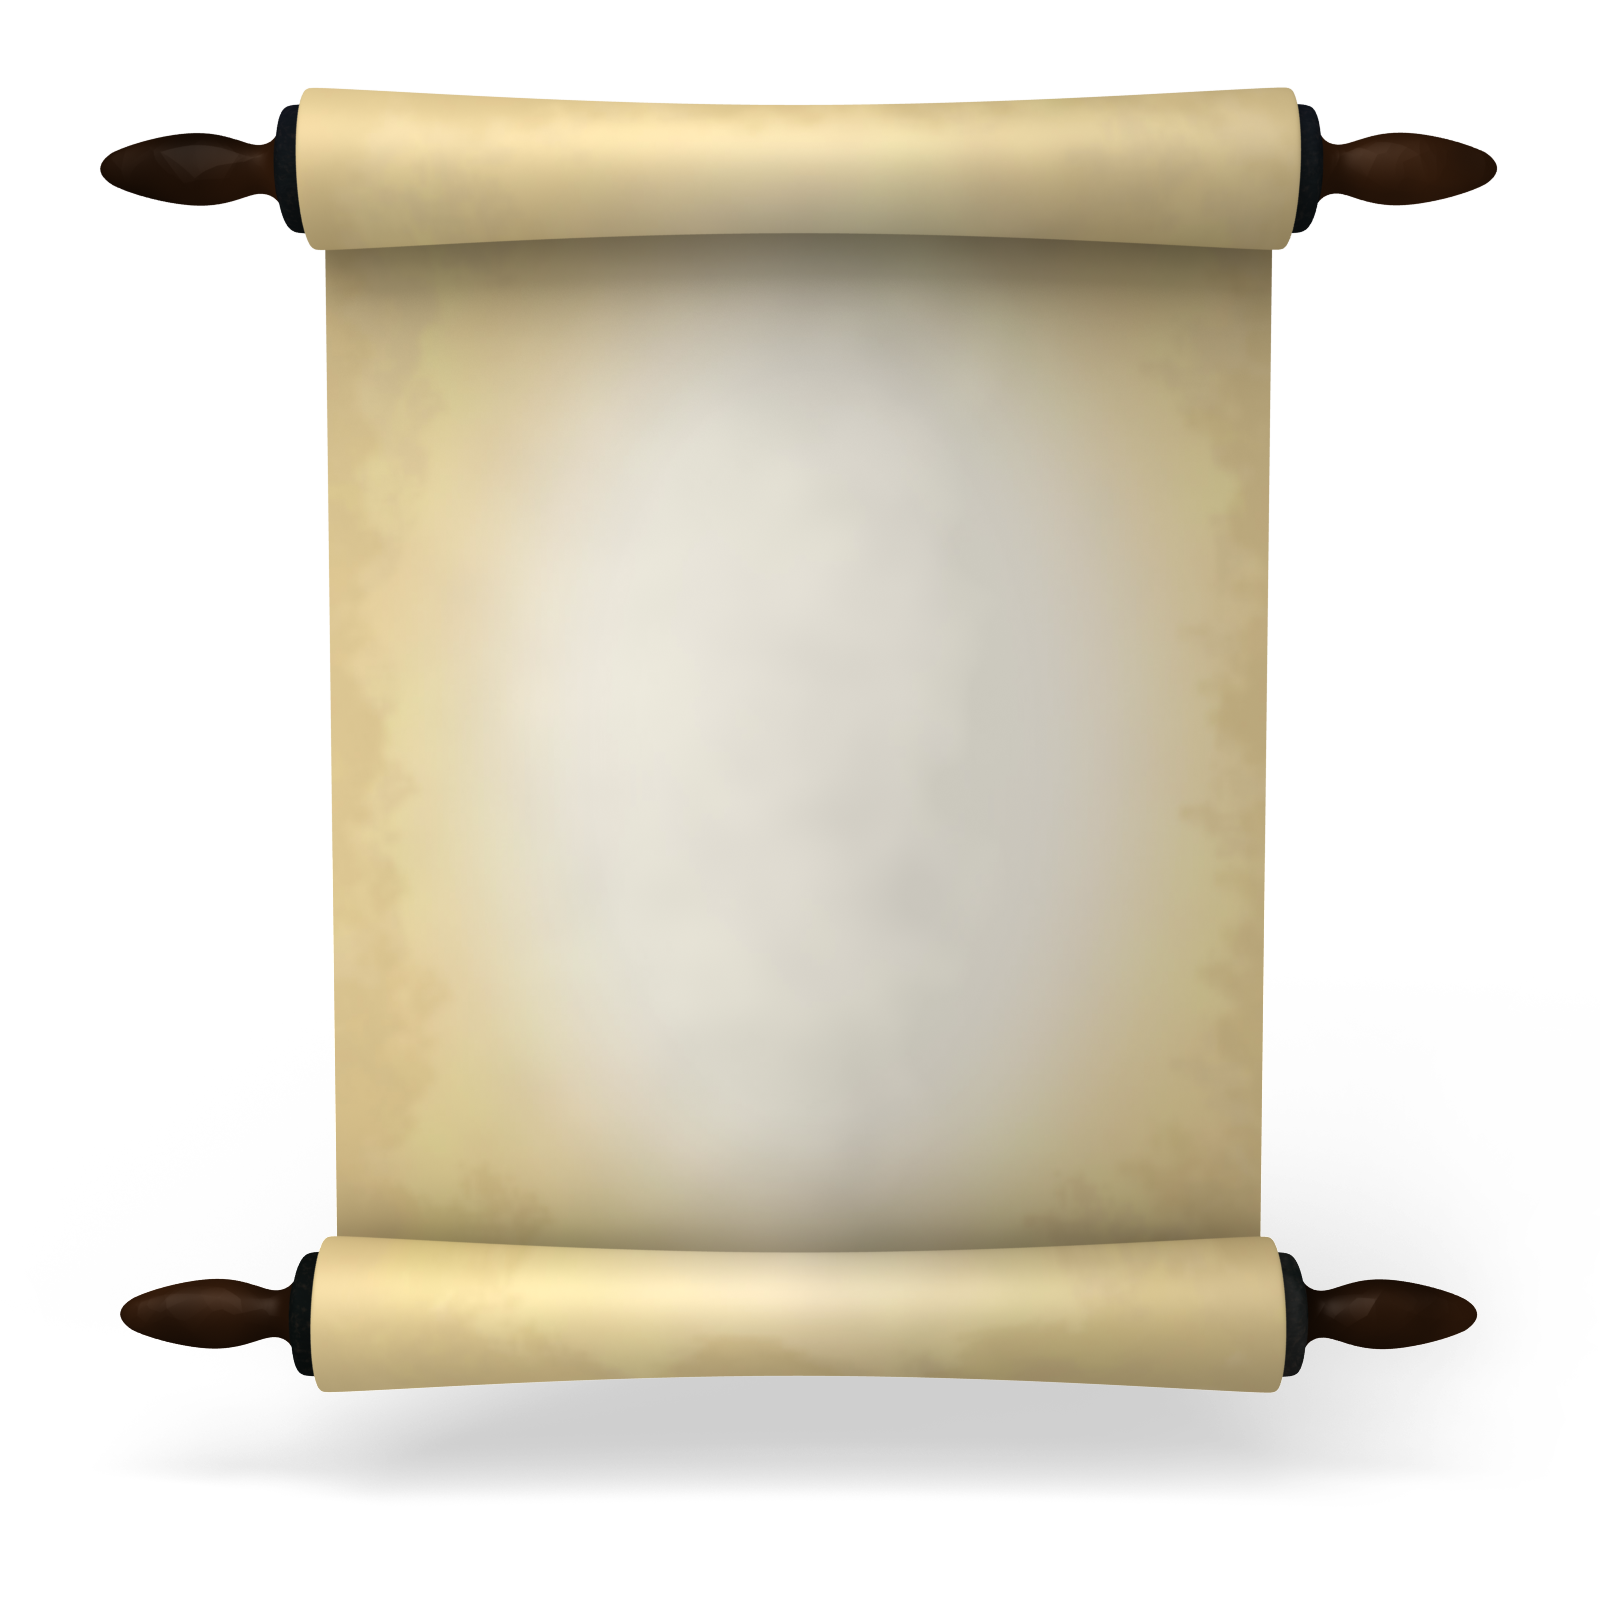 Blank Scroll Clipart - Clipart Suggest